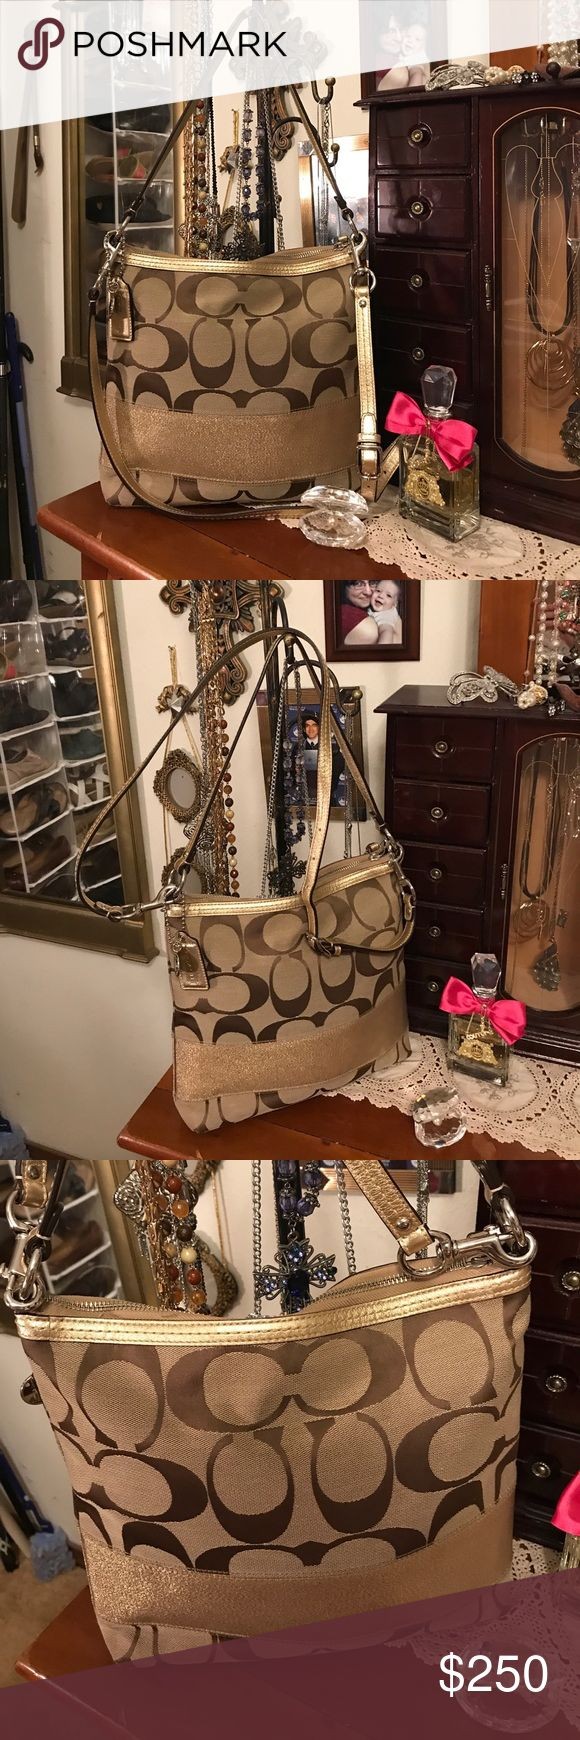 """Coach Poppy Signature Crossbody Tote Bag💃🏻🎁💐 Coach Poppy Signature Crossbody Tote Bag💃🏻🎁💐 This bag is in excellent condition there's nothing wrong and or out of the back straps are also in excellent condition. No stains tears discoloring rips tears. Size 11"""" long x 2"""" wide x 11"""" high and body strip is 41"""" long. Comes from a non-smoking home pet free. I ship Monday Wednesday and Friday if you have any questions please ask! Coach Bags Crossbody Bags"""